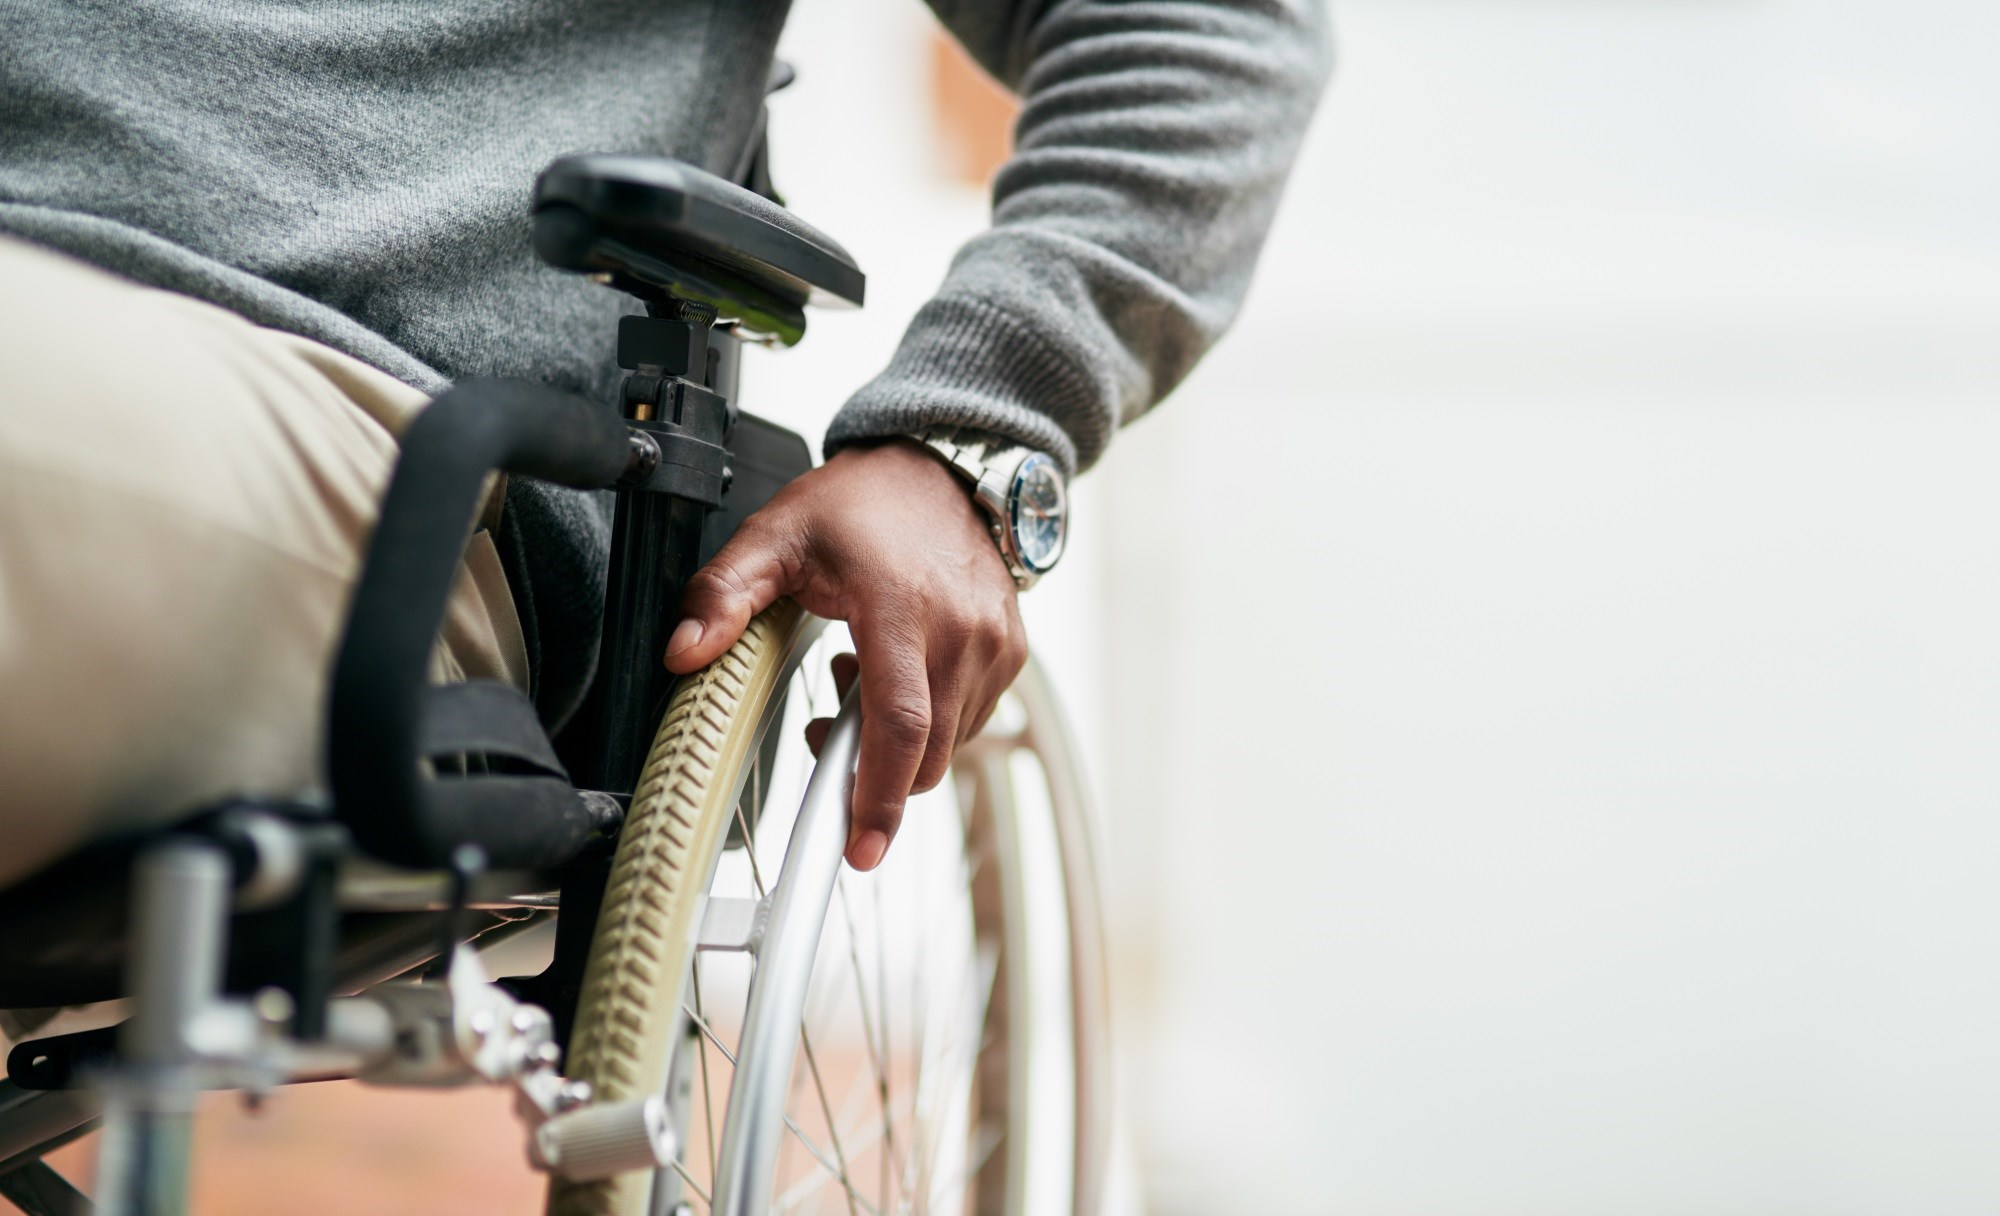 Three Ways to Improve Care for Patients With Disabilities